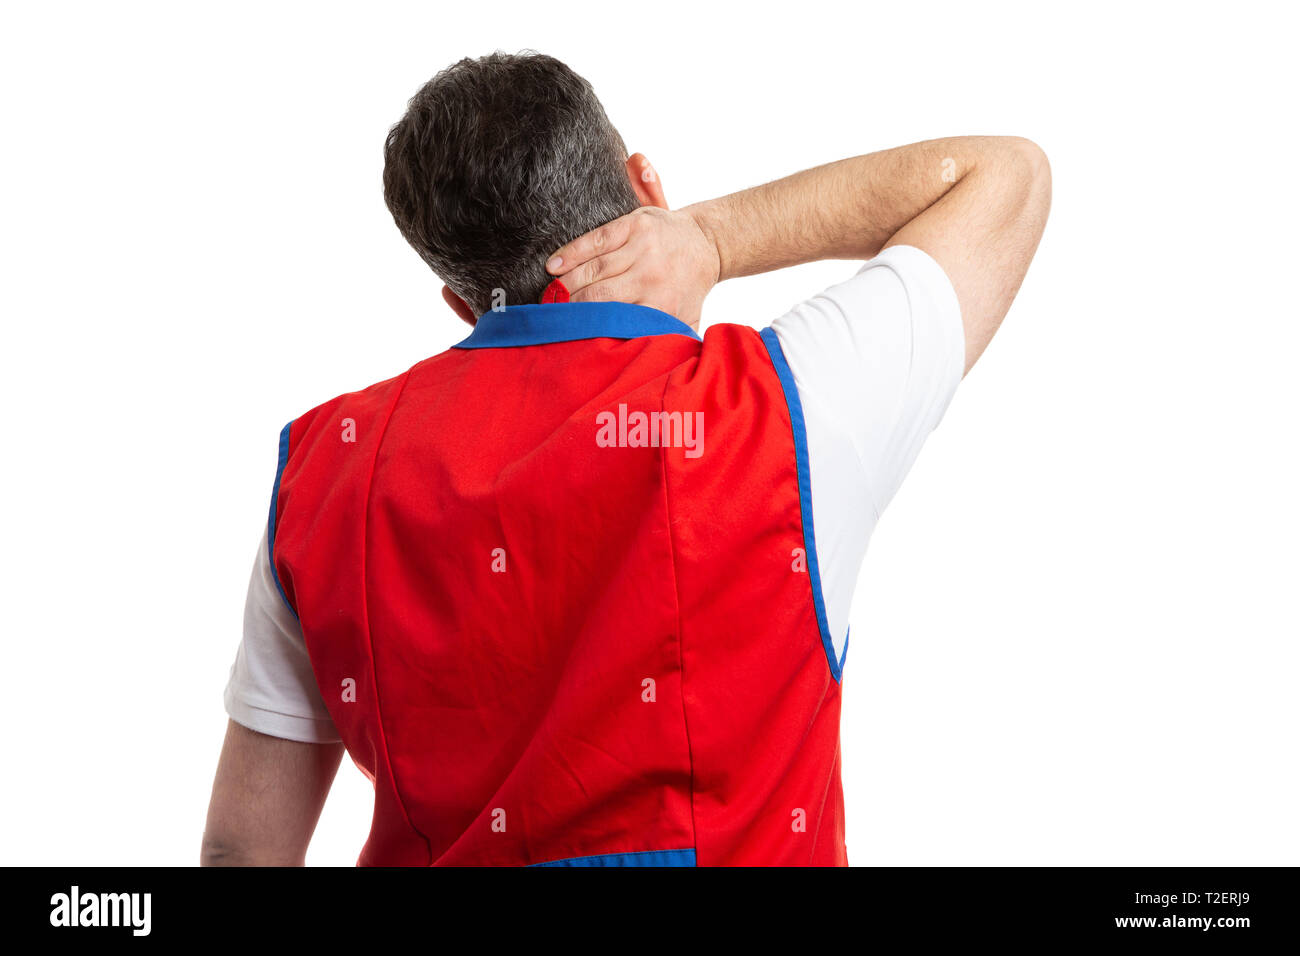 Male supermarket or hypermarket employee holding hand on painful neck with back to camera isolated on white studio background - Stock Image